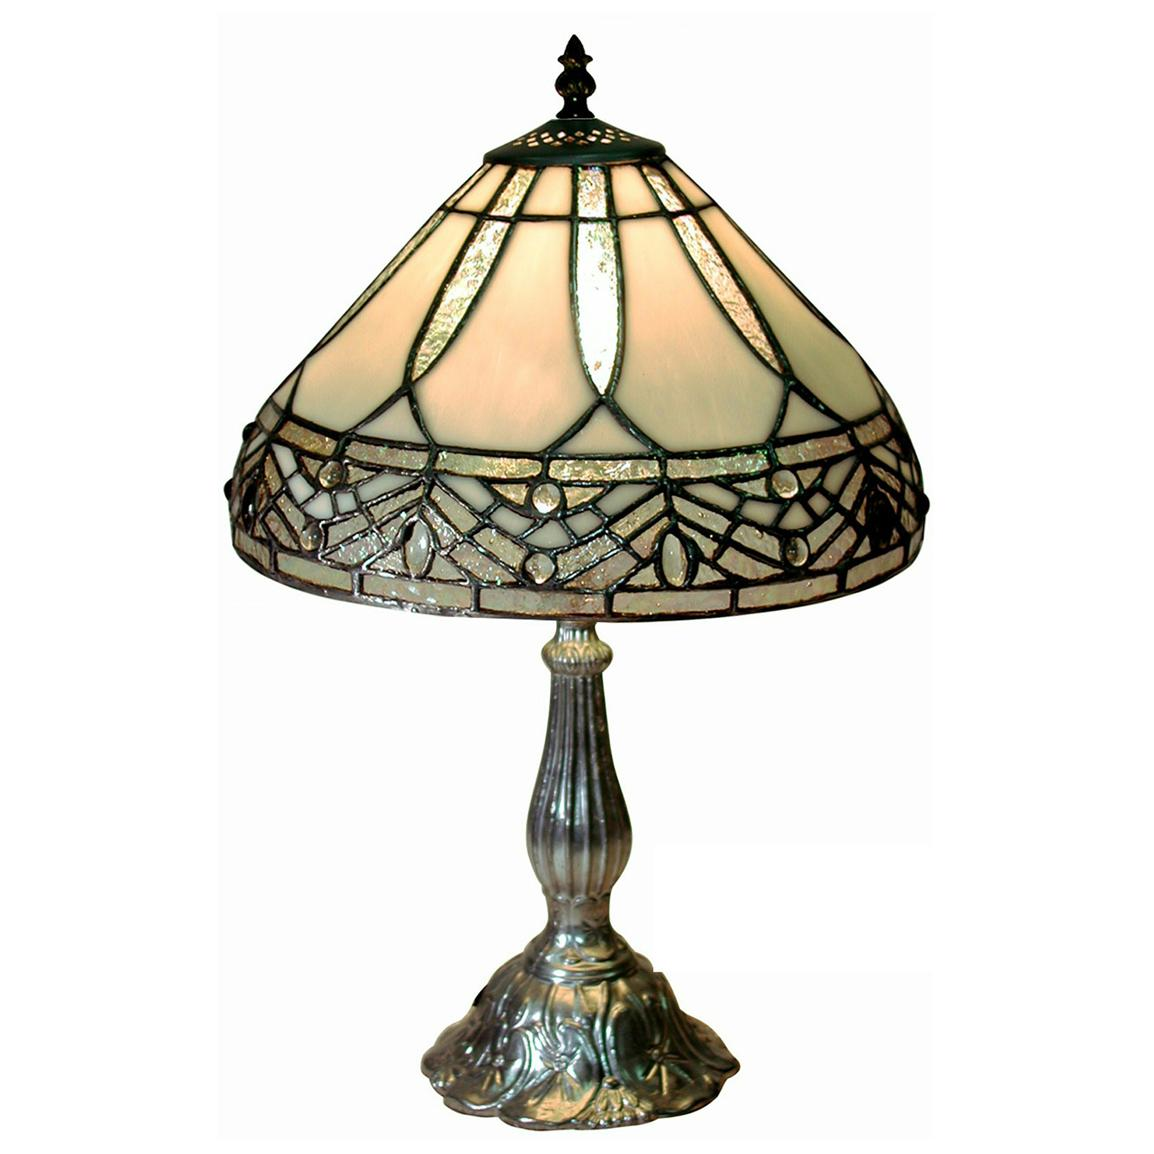 Tiffany-style Petite Table Lamp